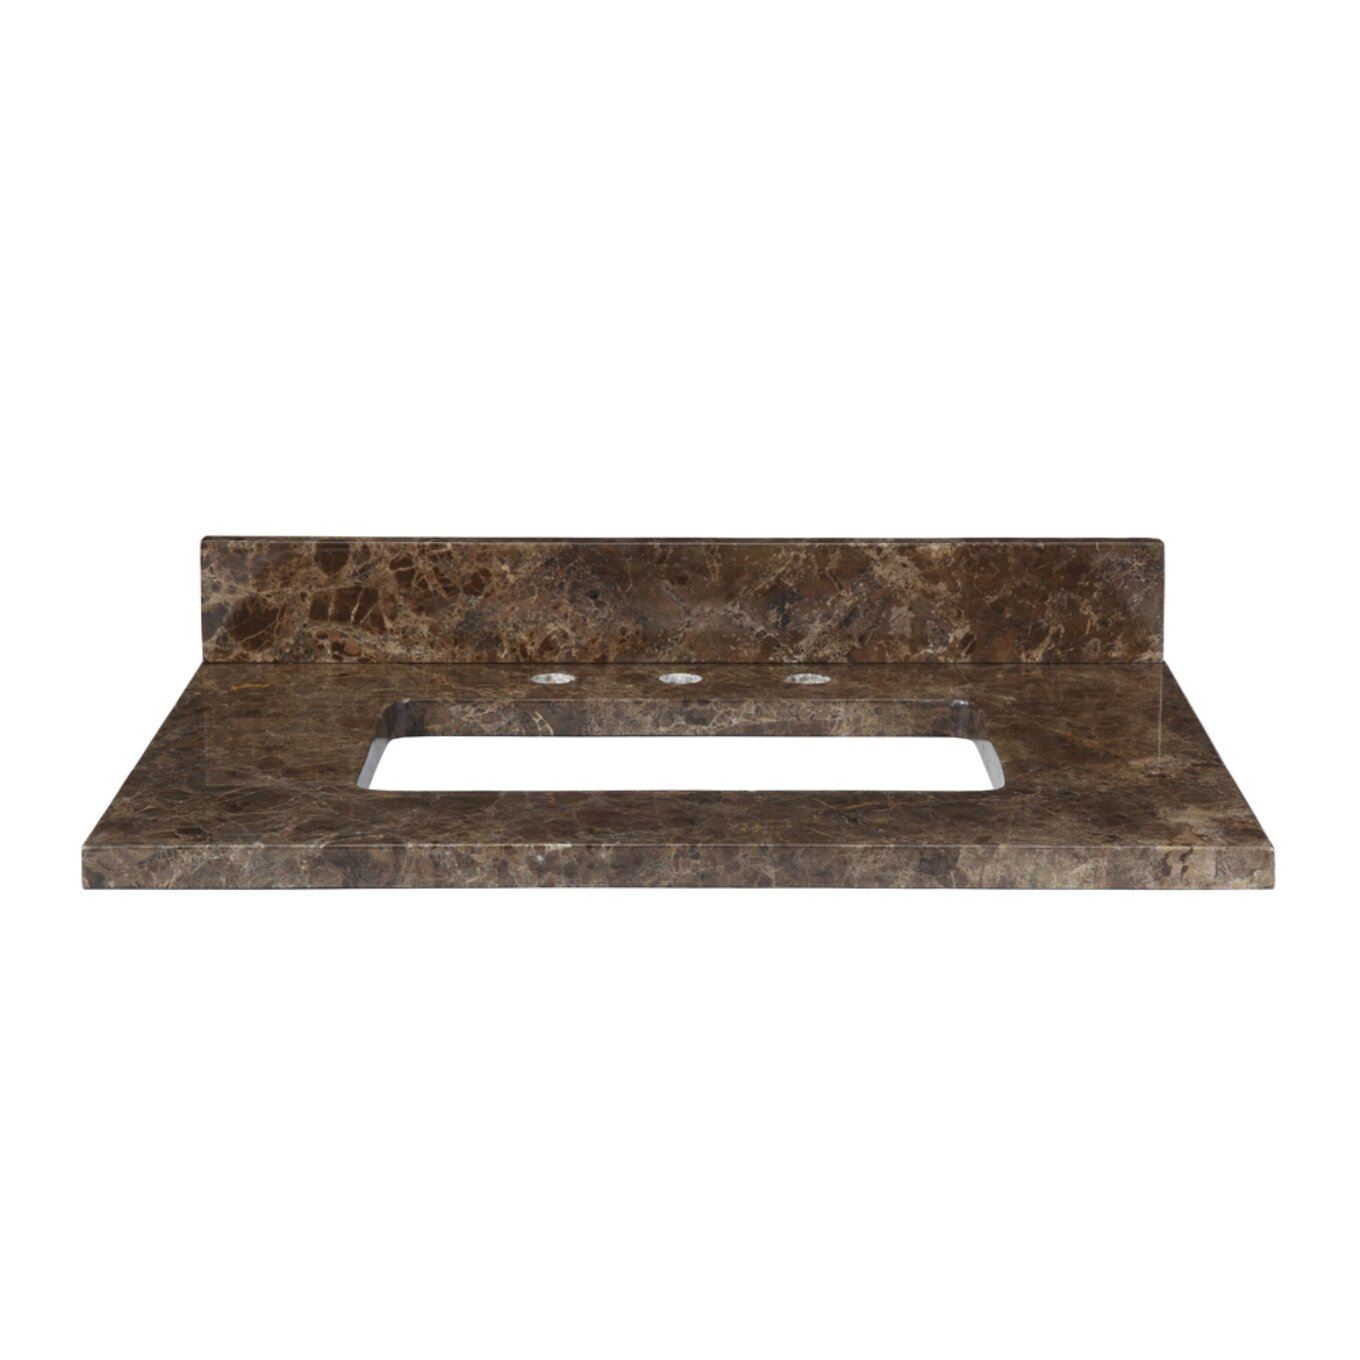 31 marble vanity top for rectangular undermount sink with backsplash